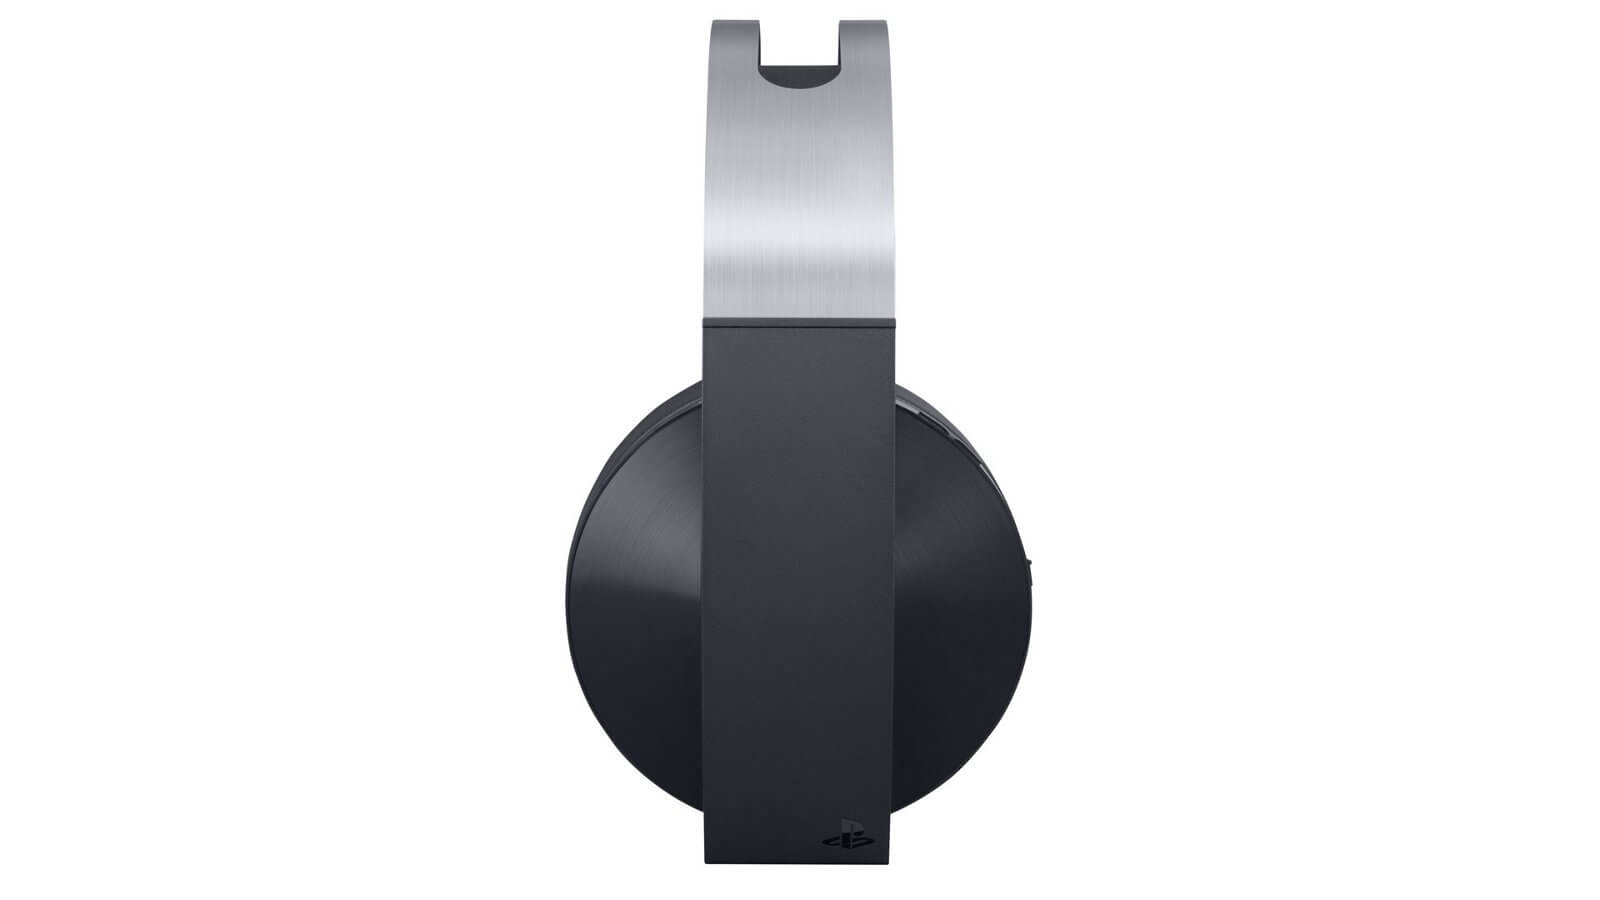 PS4 platinum Pro level gaming audio from our best PS4 headset